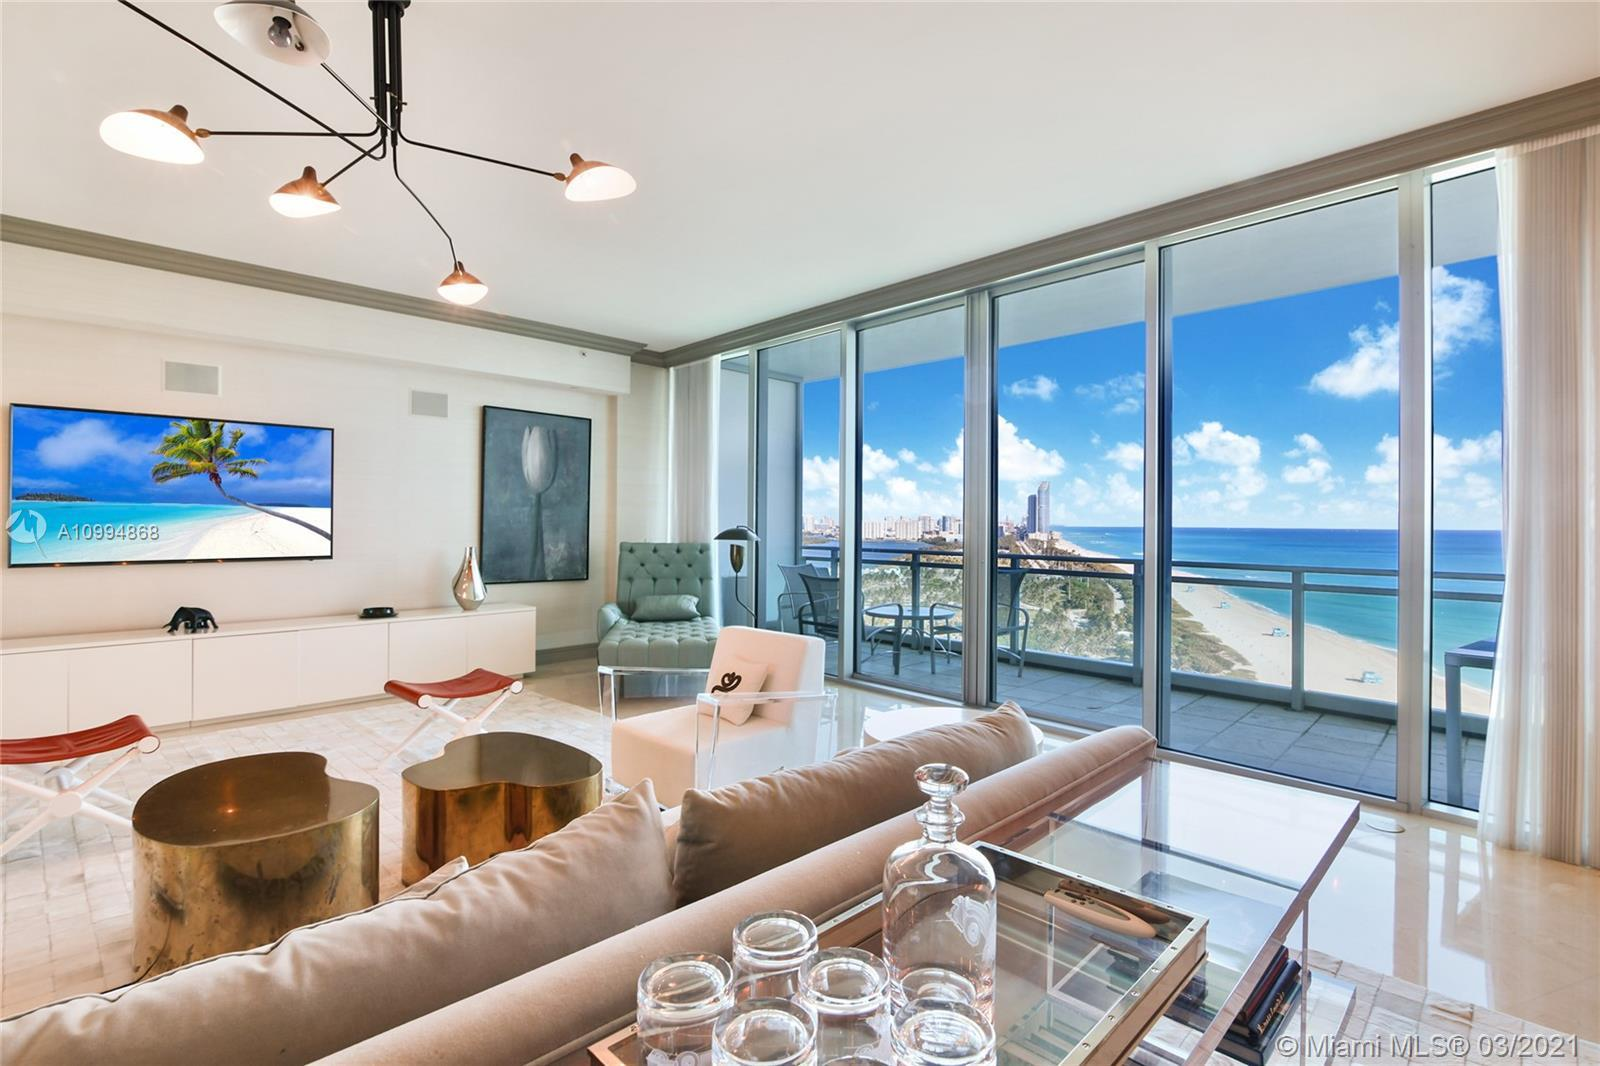 NEW ON THE MARKET ! BREATHTAKING PANORAMIC DIRECT OCEAN, INTRACOASTAL & MIAMI SKYLINE VIEWS!  3 BEDR